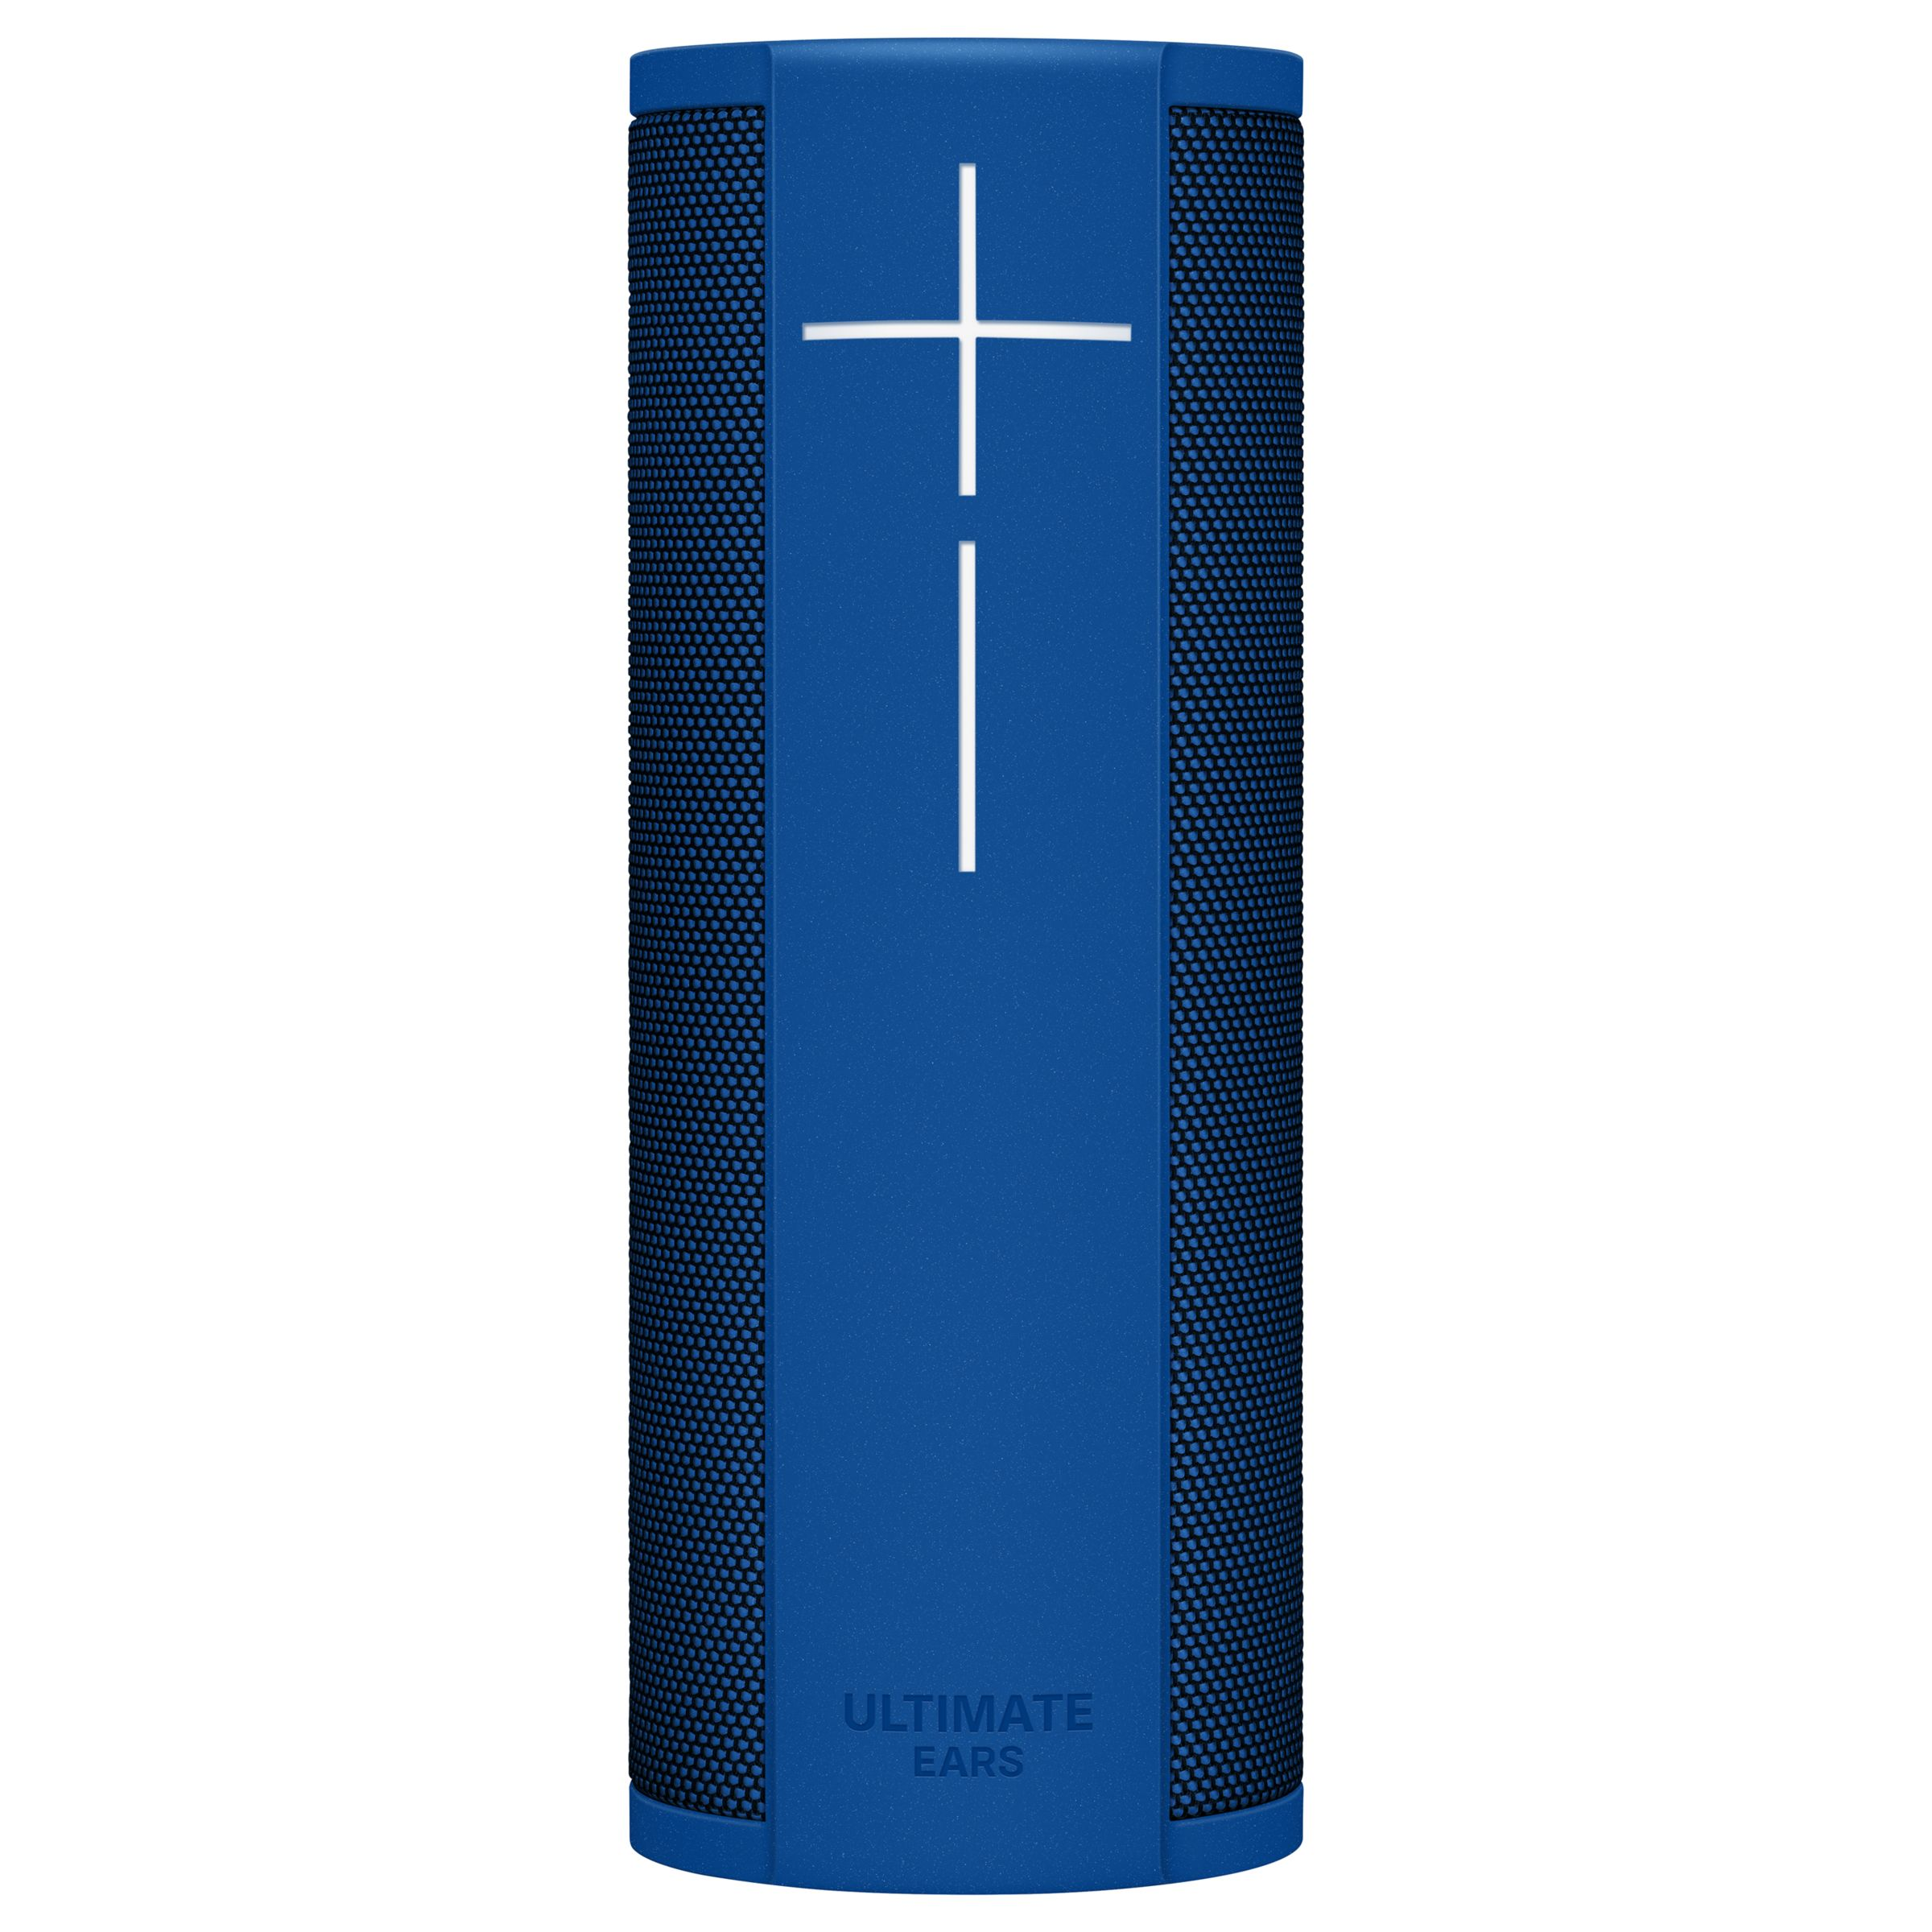 Ultimate Ears Ultimate Ears MEGABLAST Bluetooth Wi-Fi Waterproof Portable Speaker with Alexa Voice Recognition & Control